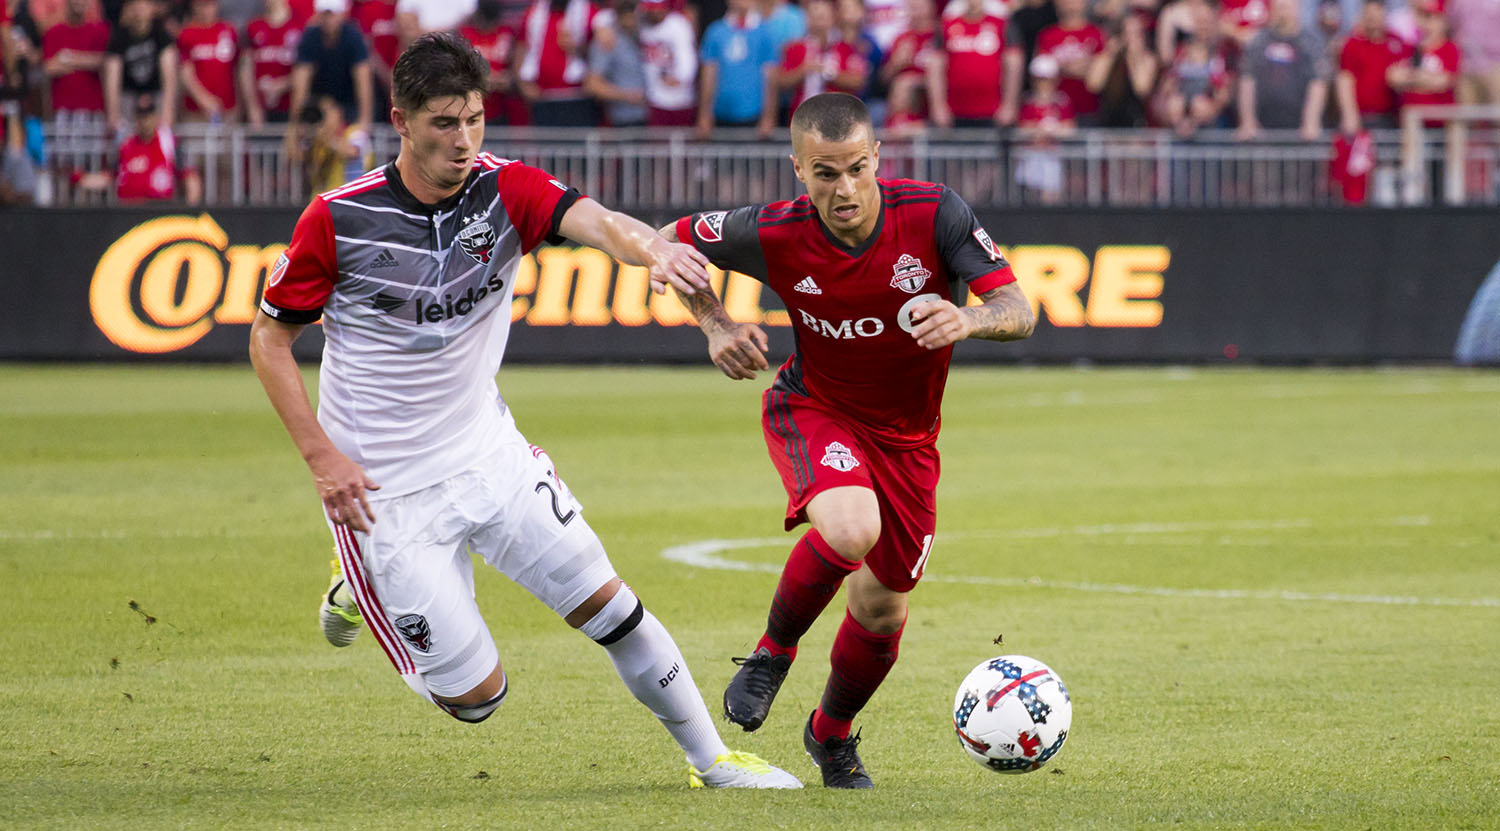 Sebastian Giovinco trying to get away from a DC United player. Image by Dennis Marciniak of denMAR Media.